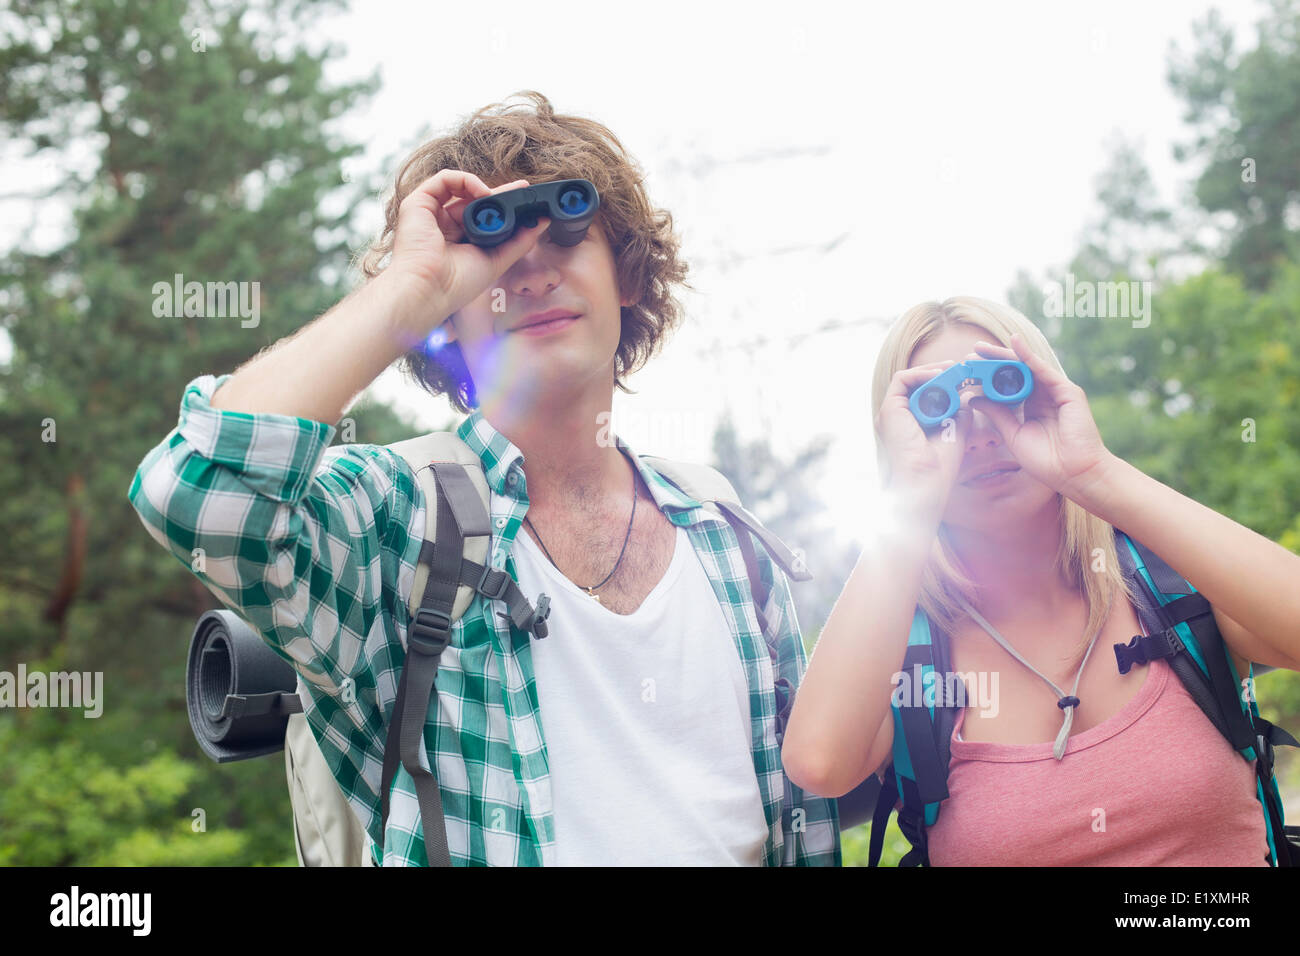 Young hiking couple using binoculars in forest - Stock Image